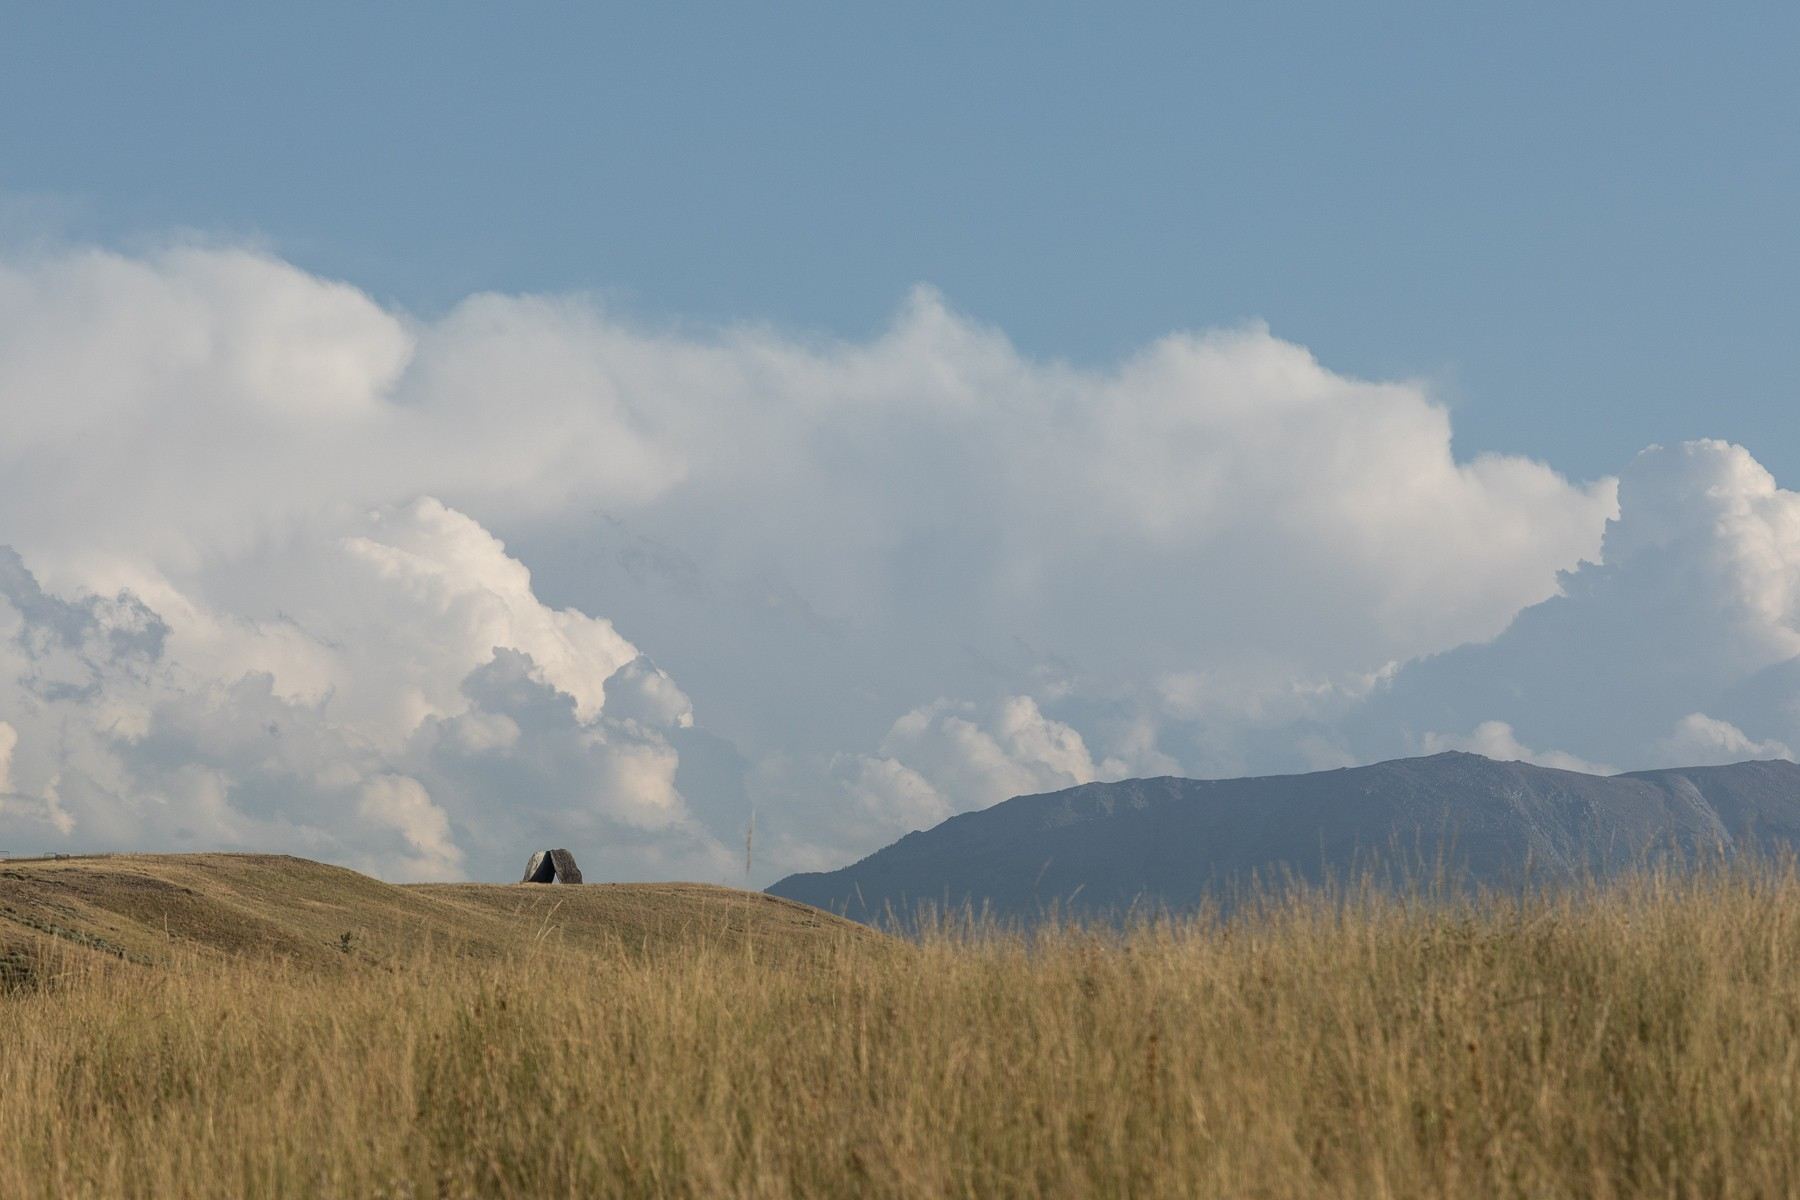 Ensamble Studio_James Florio_Tippet Rise